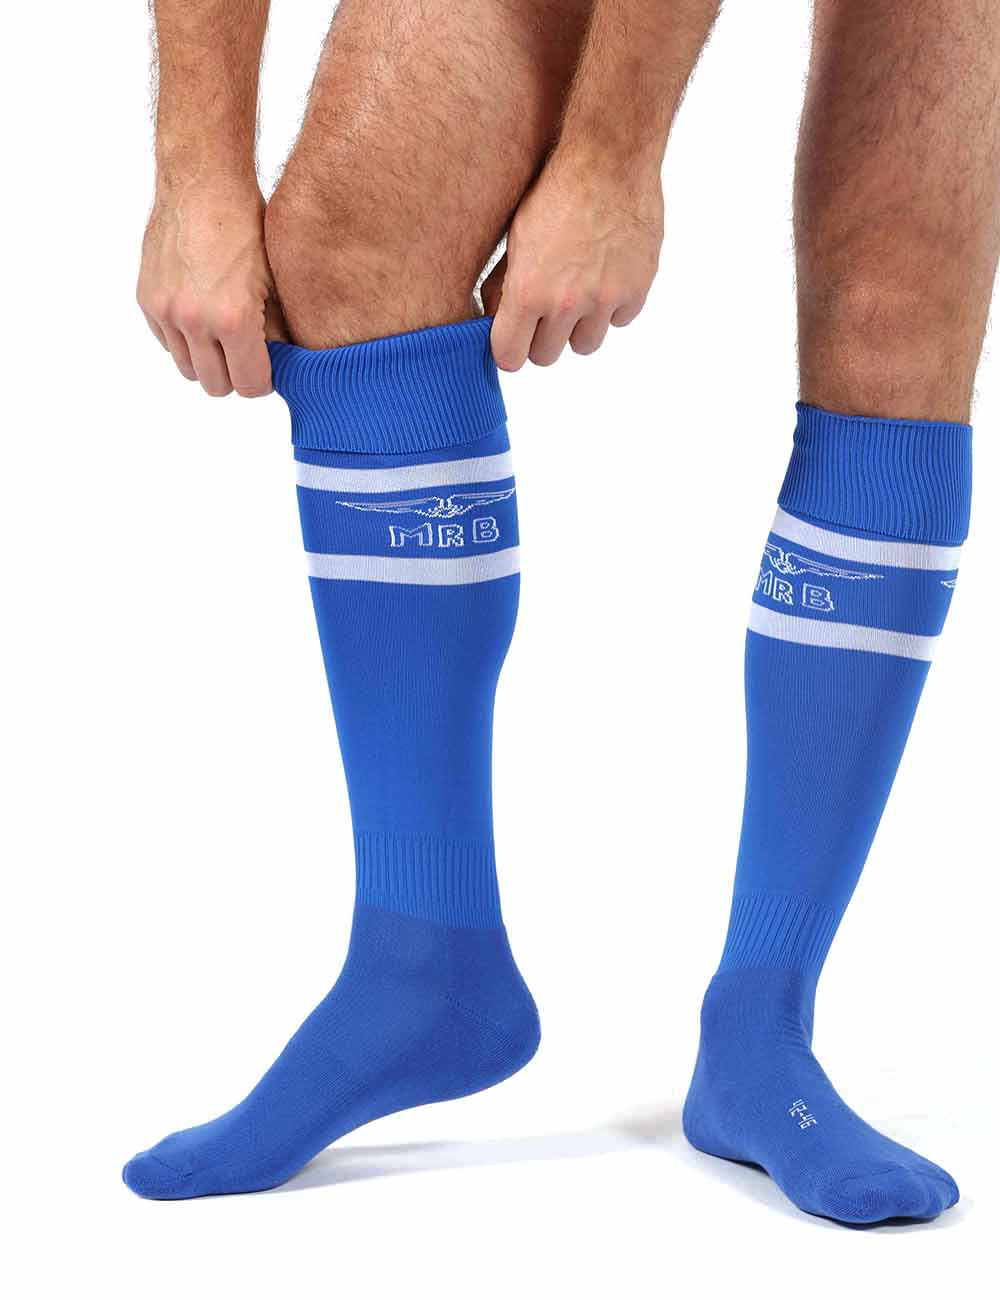 Mister B urban football socks with condom pocket blue